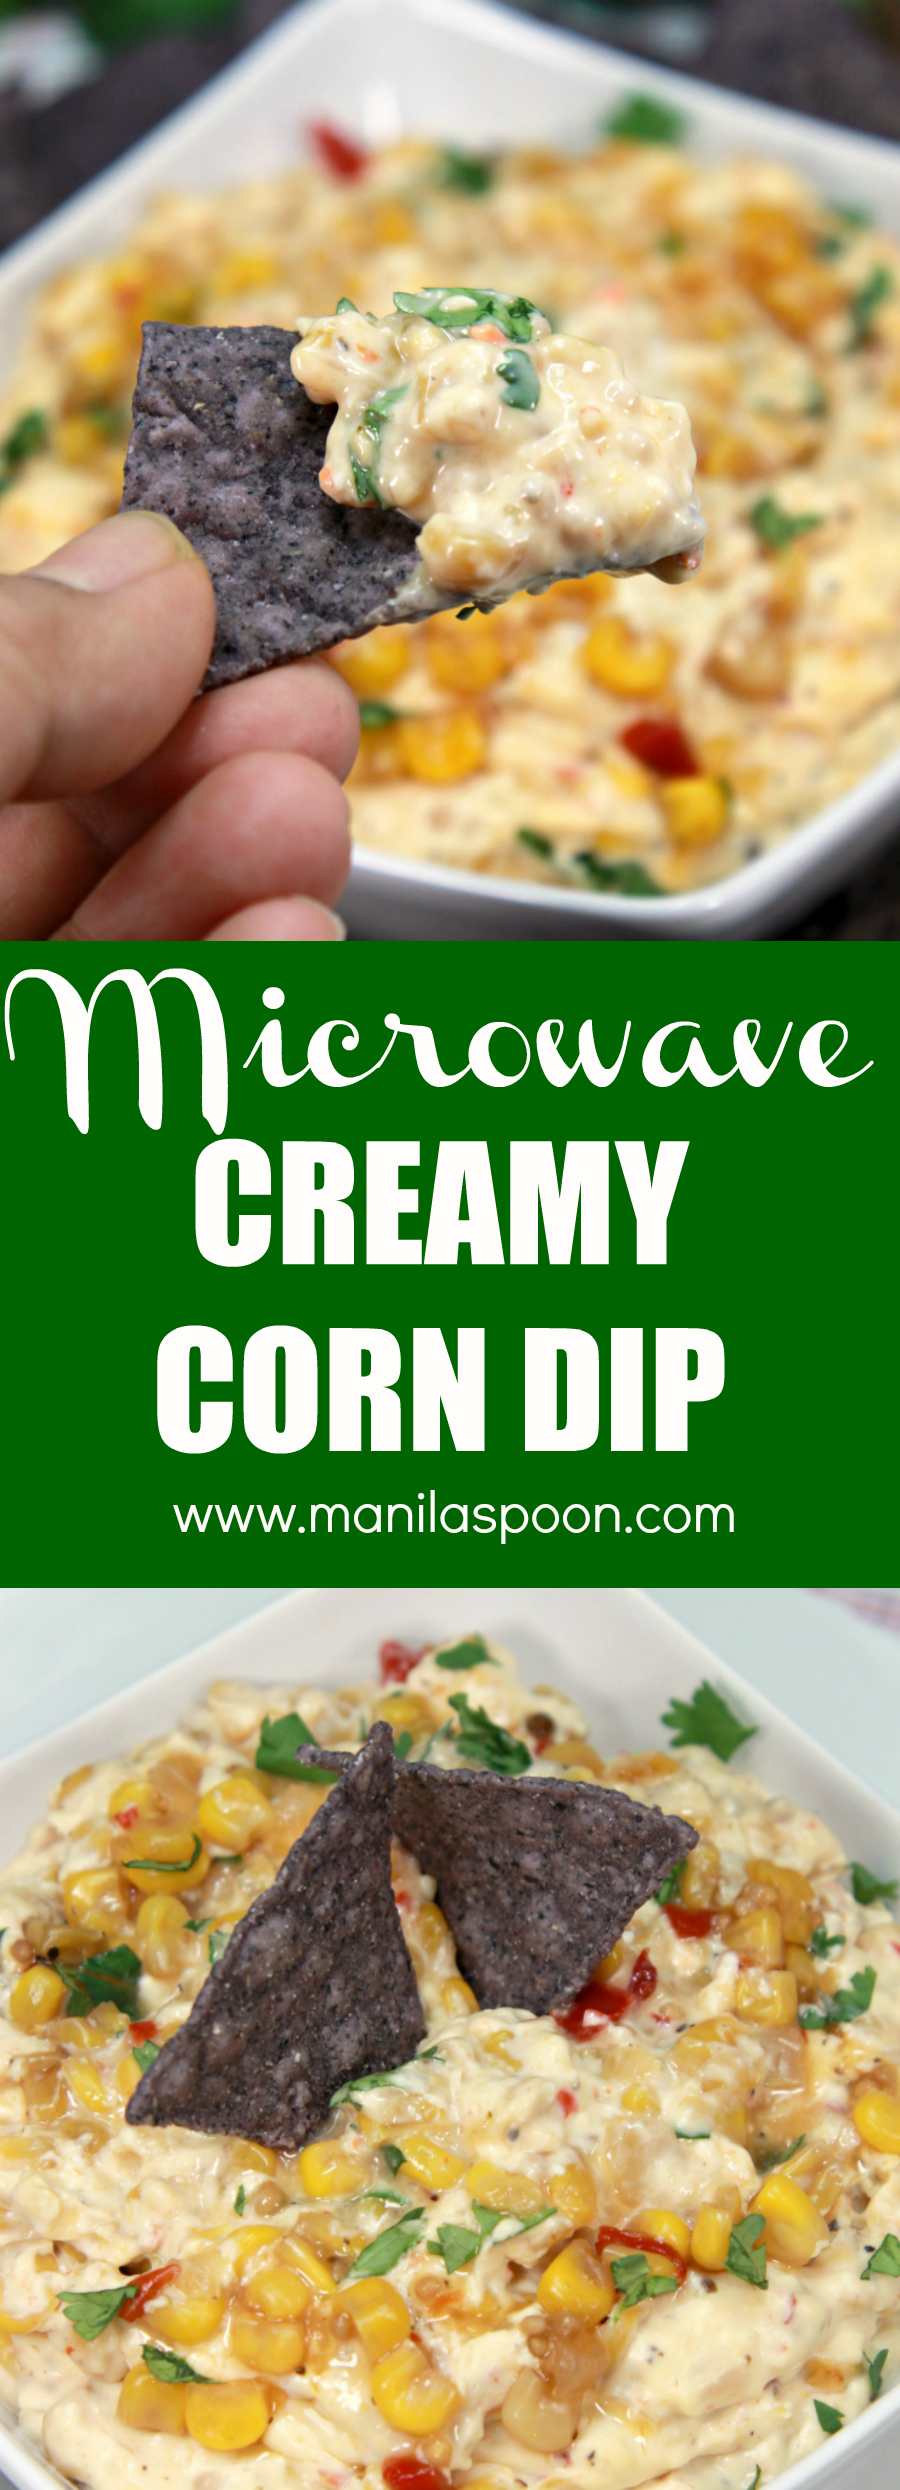 Just 5 minutes and only 3 ingredients to make this easy and deliciously creamy microwave corn dip!! Perfect for all your holiday parties!